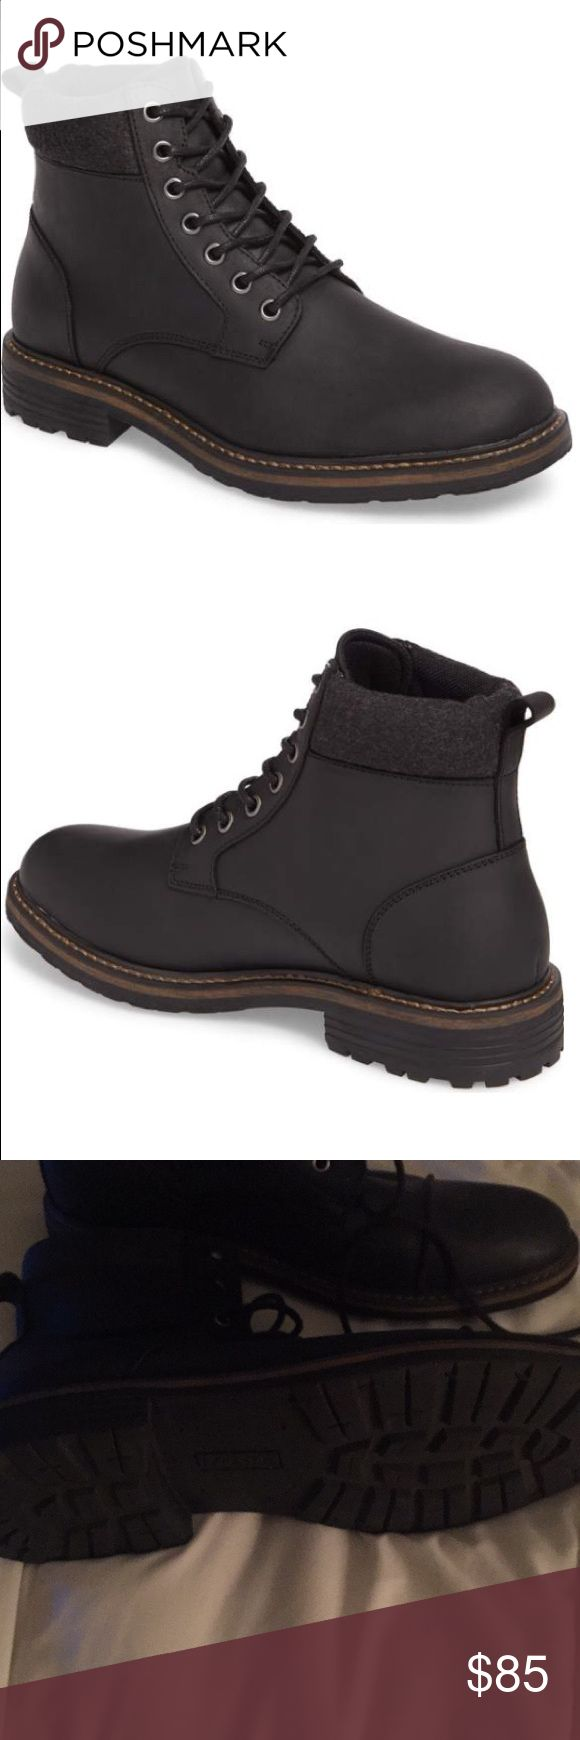 The Rail Men's Black Rugged Style Boots Worn only twice. Excellent condition. Leather upper sole and lining. Great rugged style boot in Black . Size 44. Nordstroms size is 44 The Rail Shoes Boots